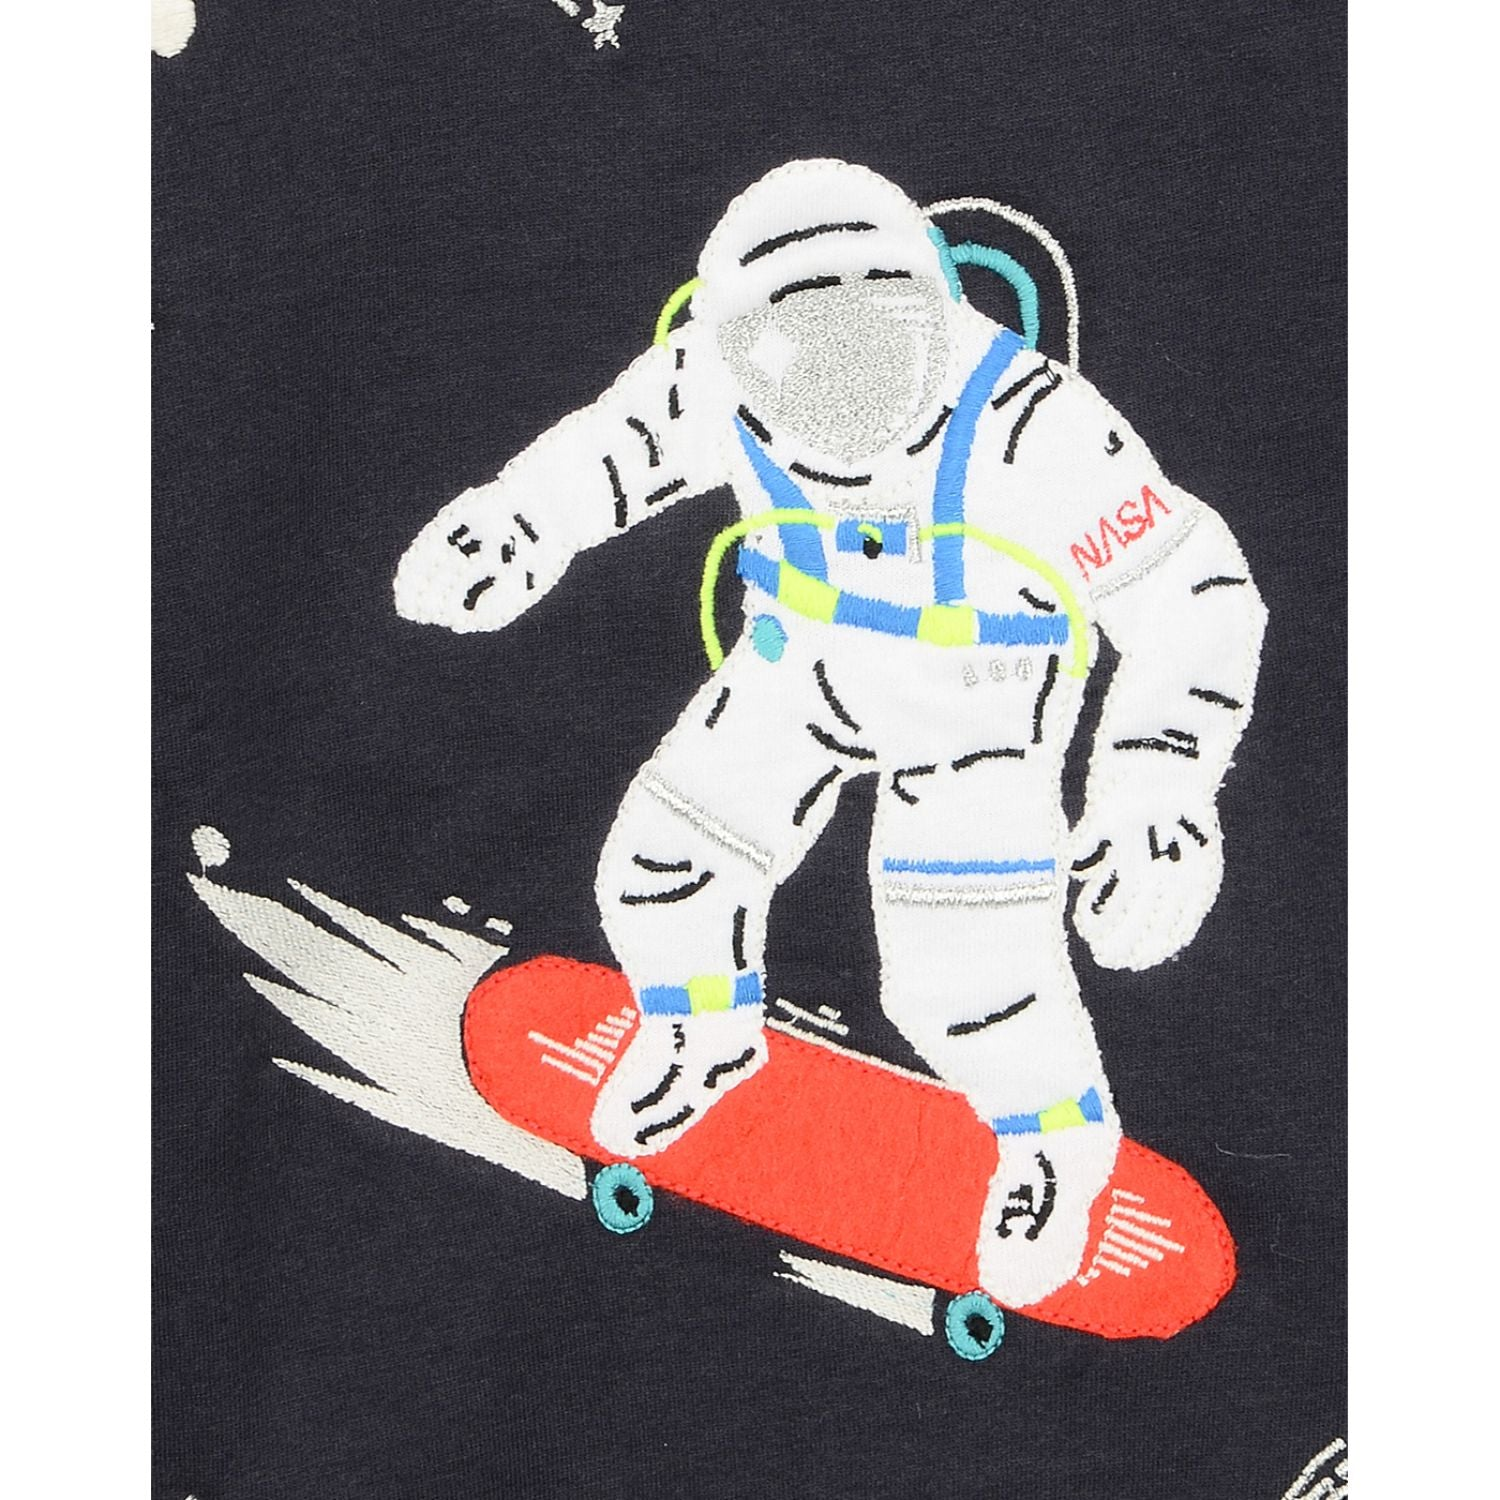 Skater astronaut Sweatshirt for kids